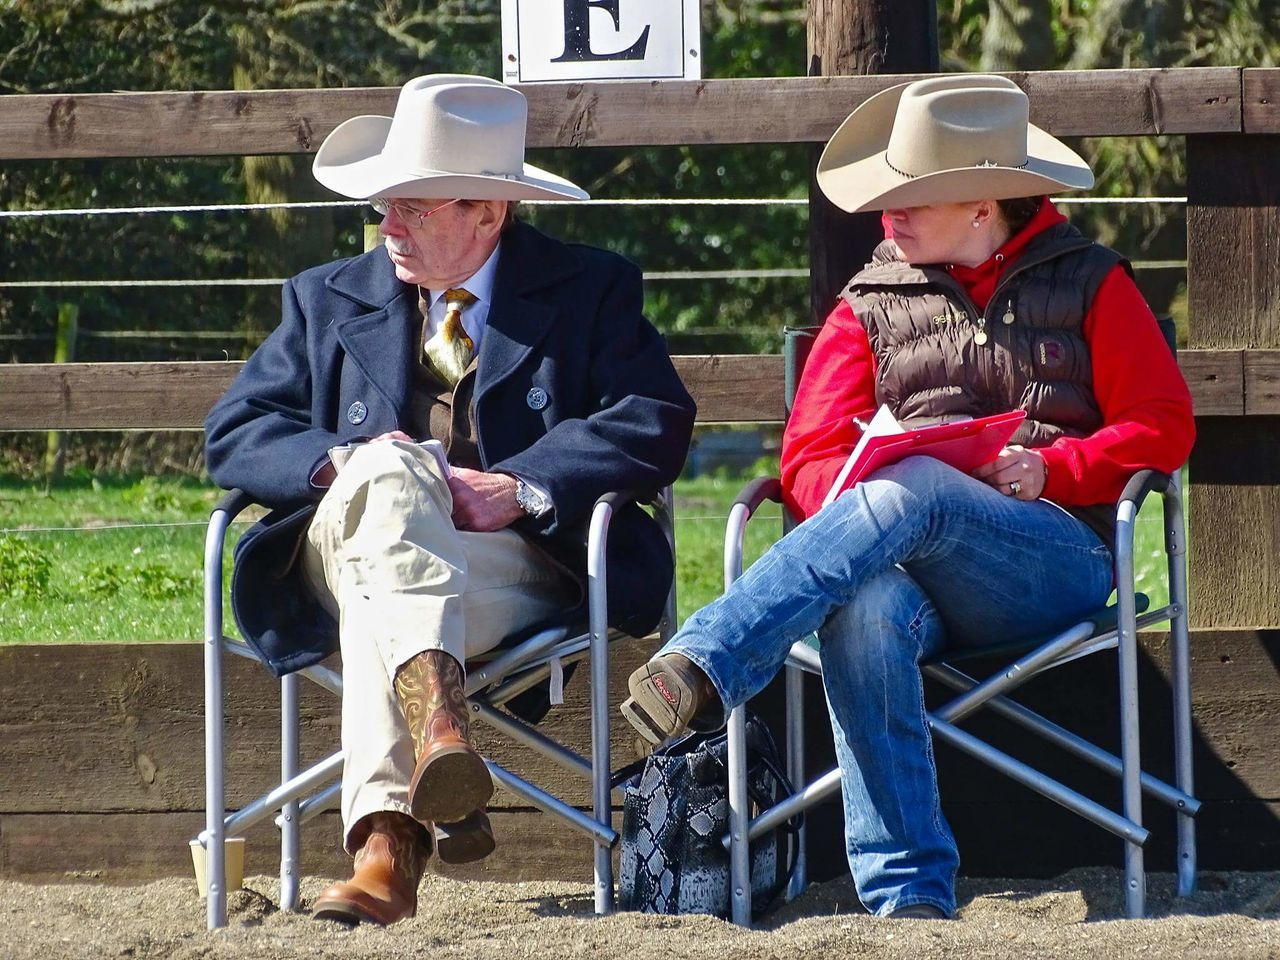 Sitting Two People Western Riding Western Horse Horse Riding Cowboy Hat Cowboyhat Cowboyboots Horse Show